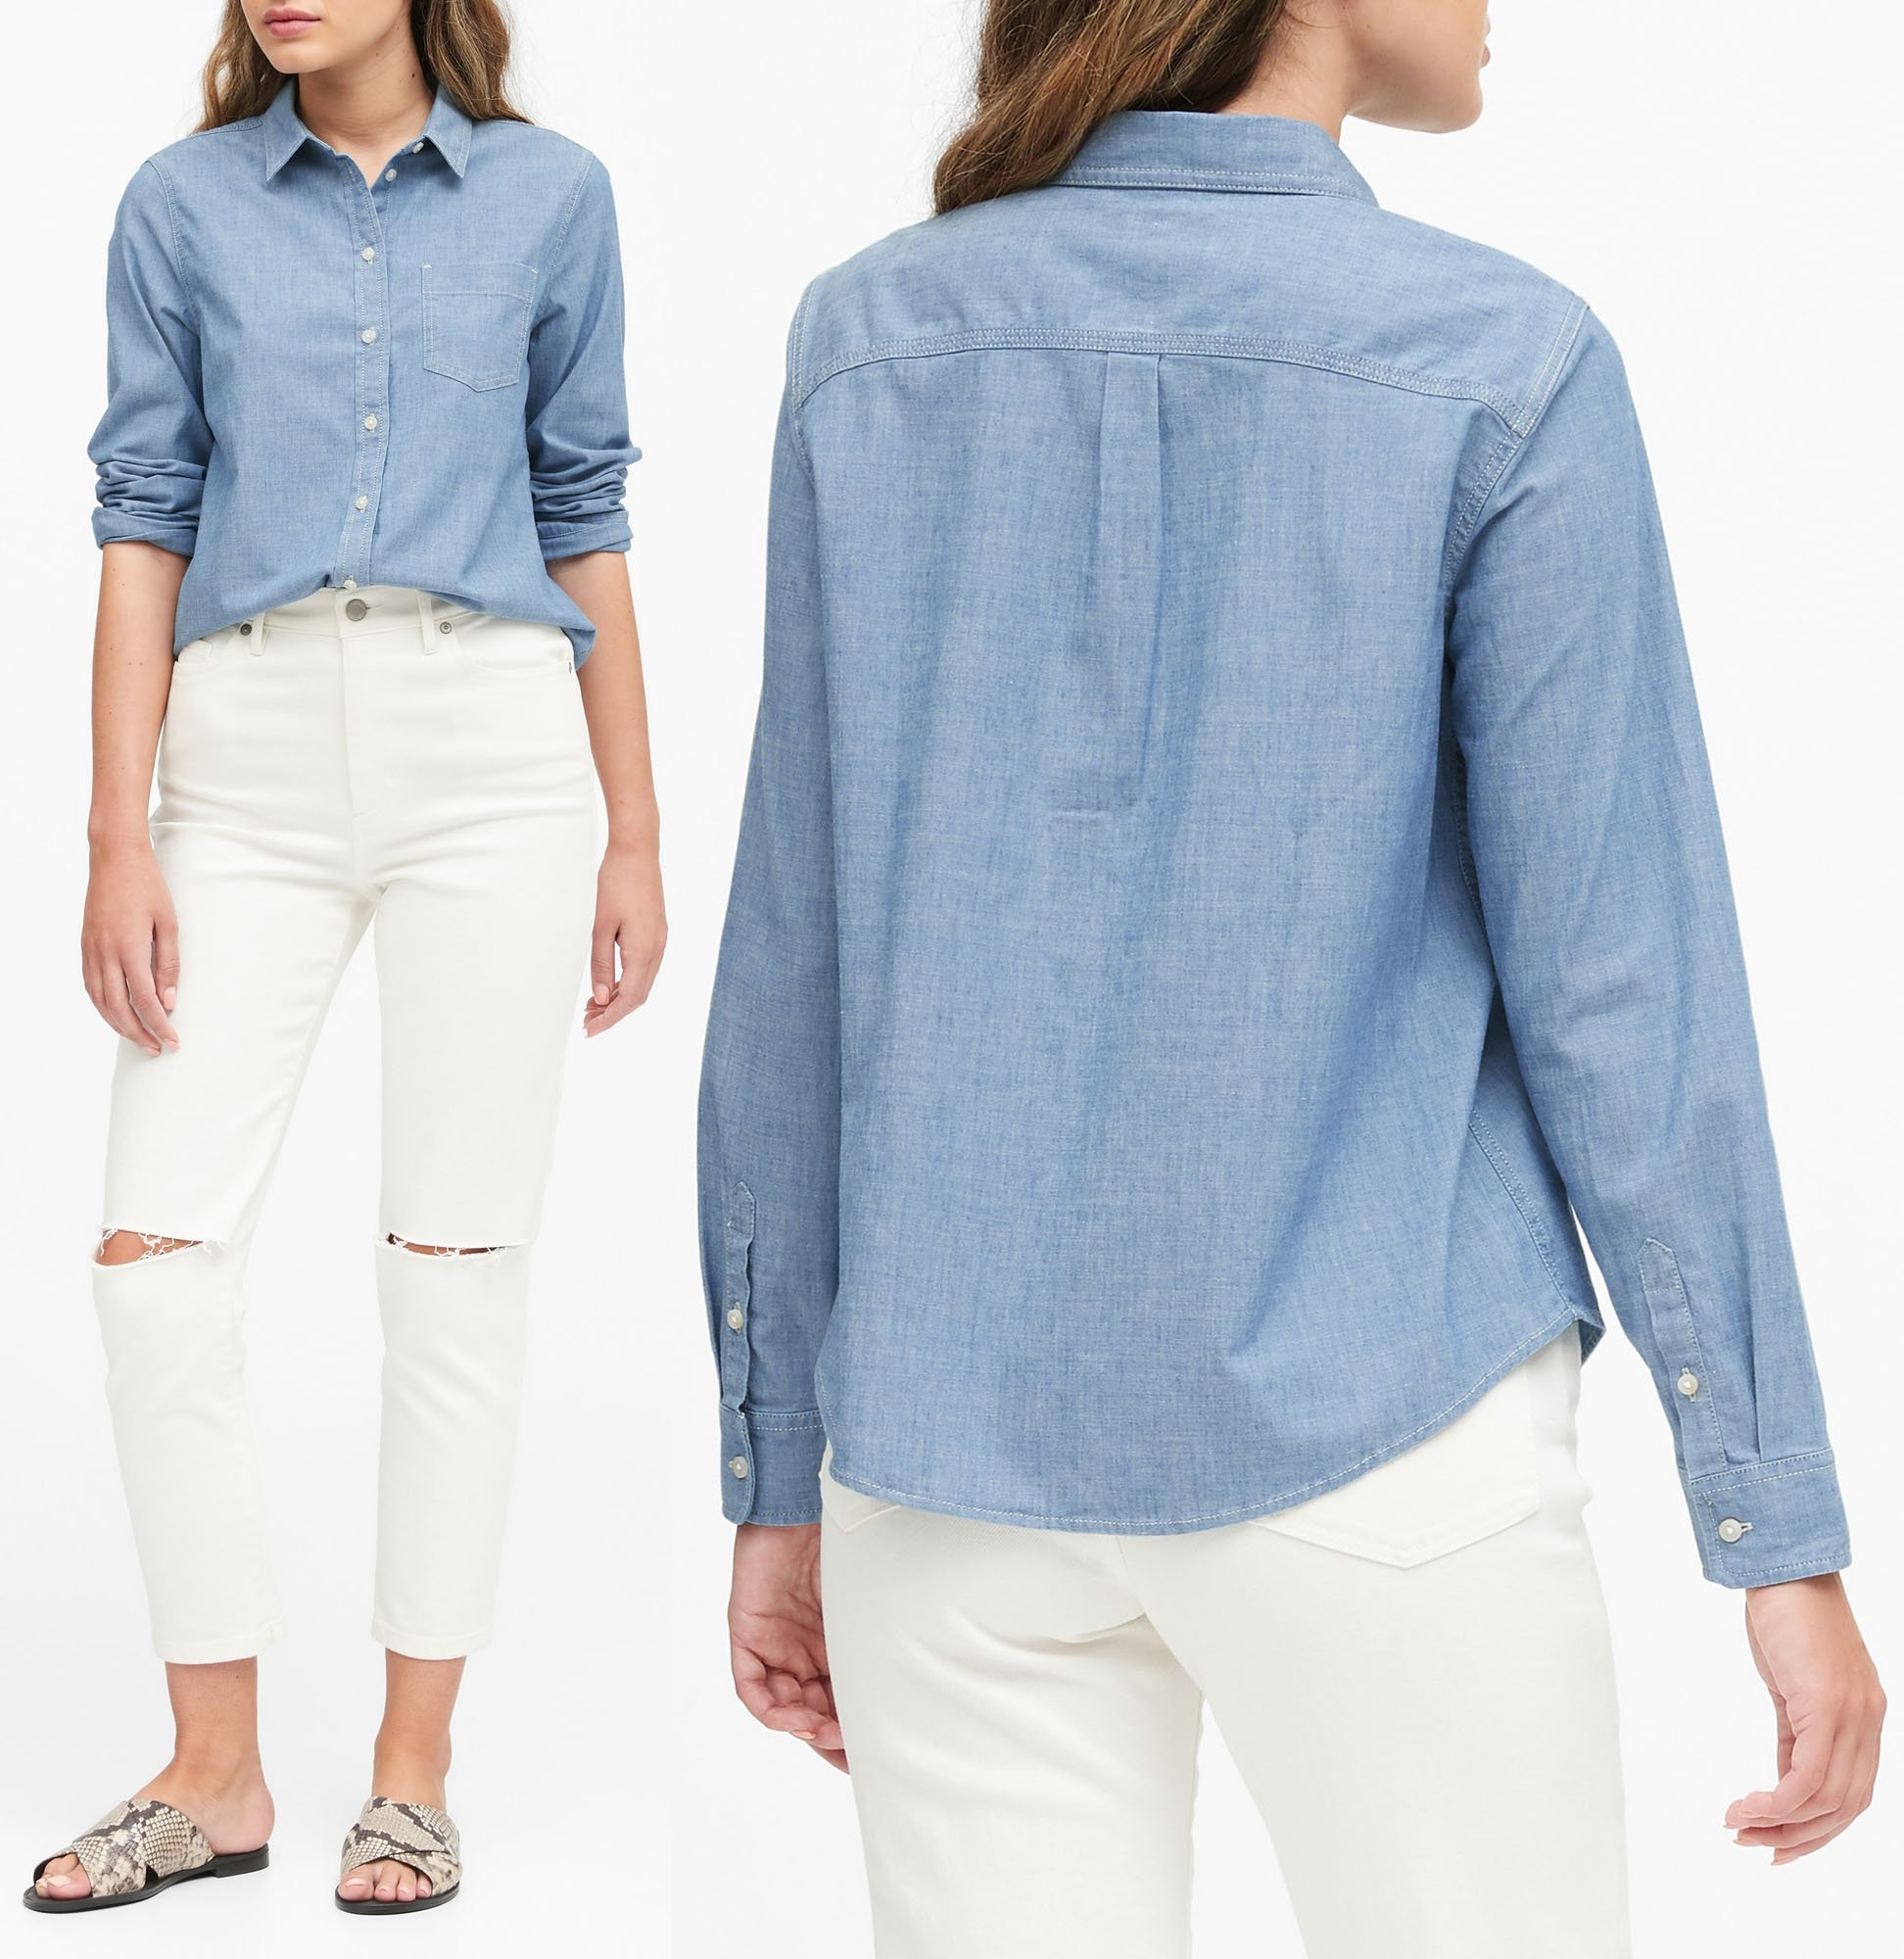 Banana Republic is a contemporary clothing company known for its easy elegance